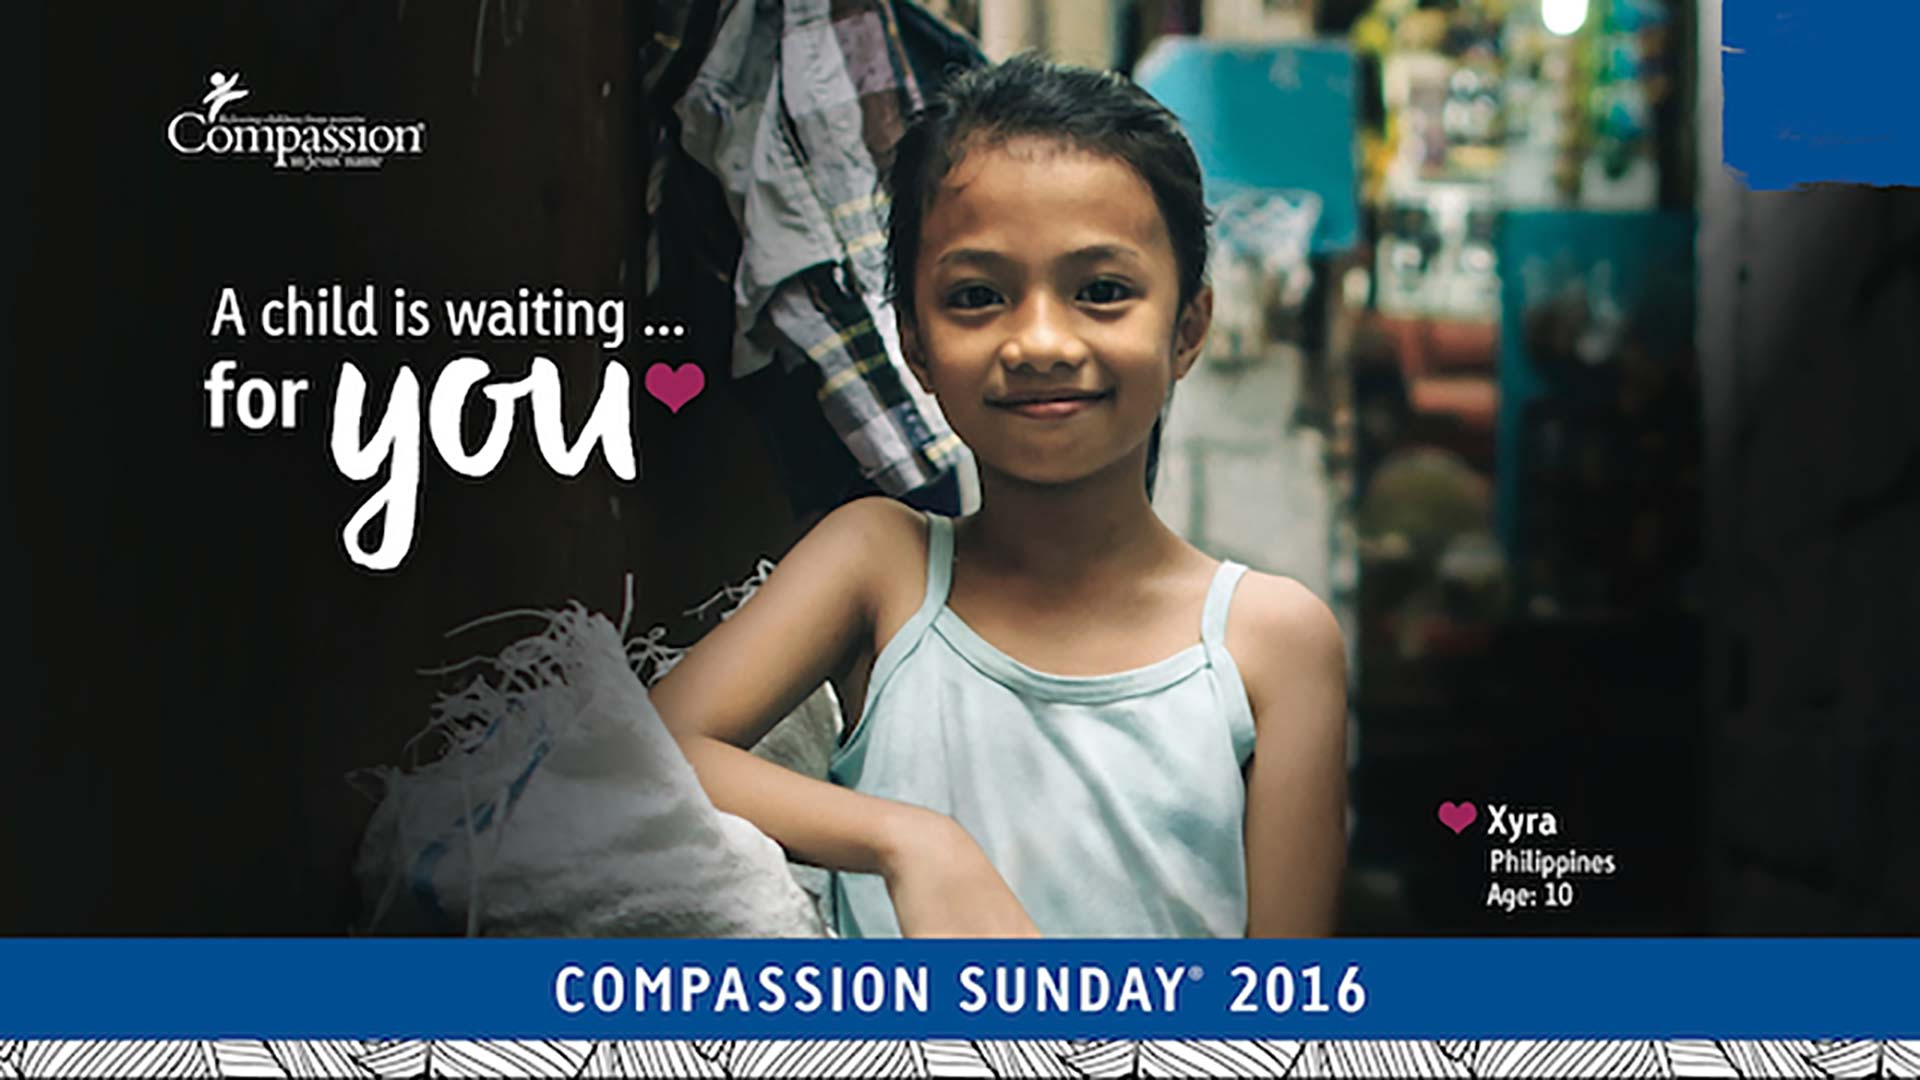 Compassion Sunday Image